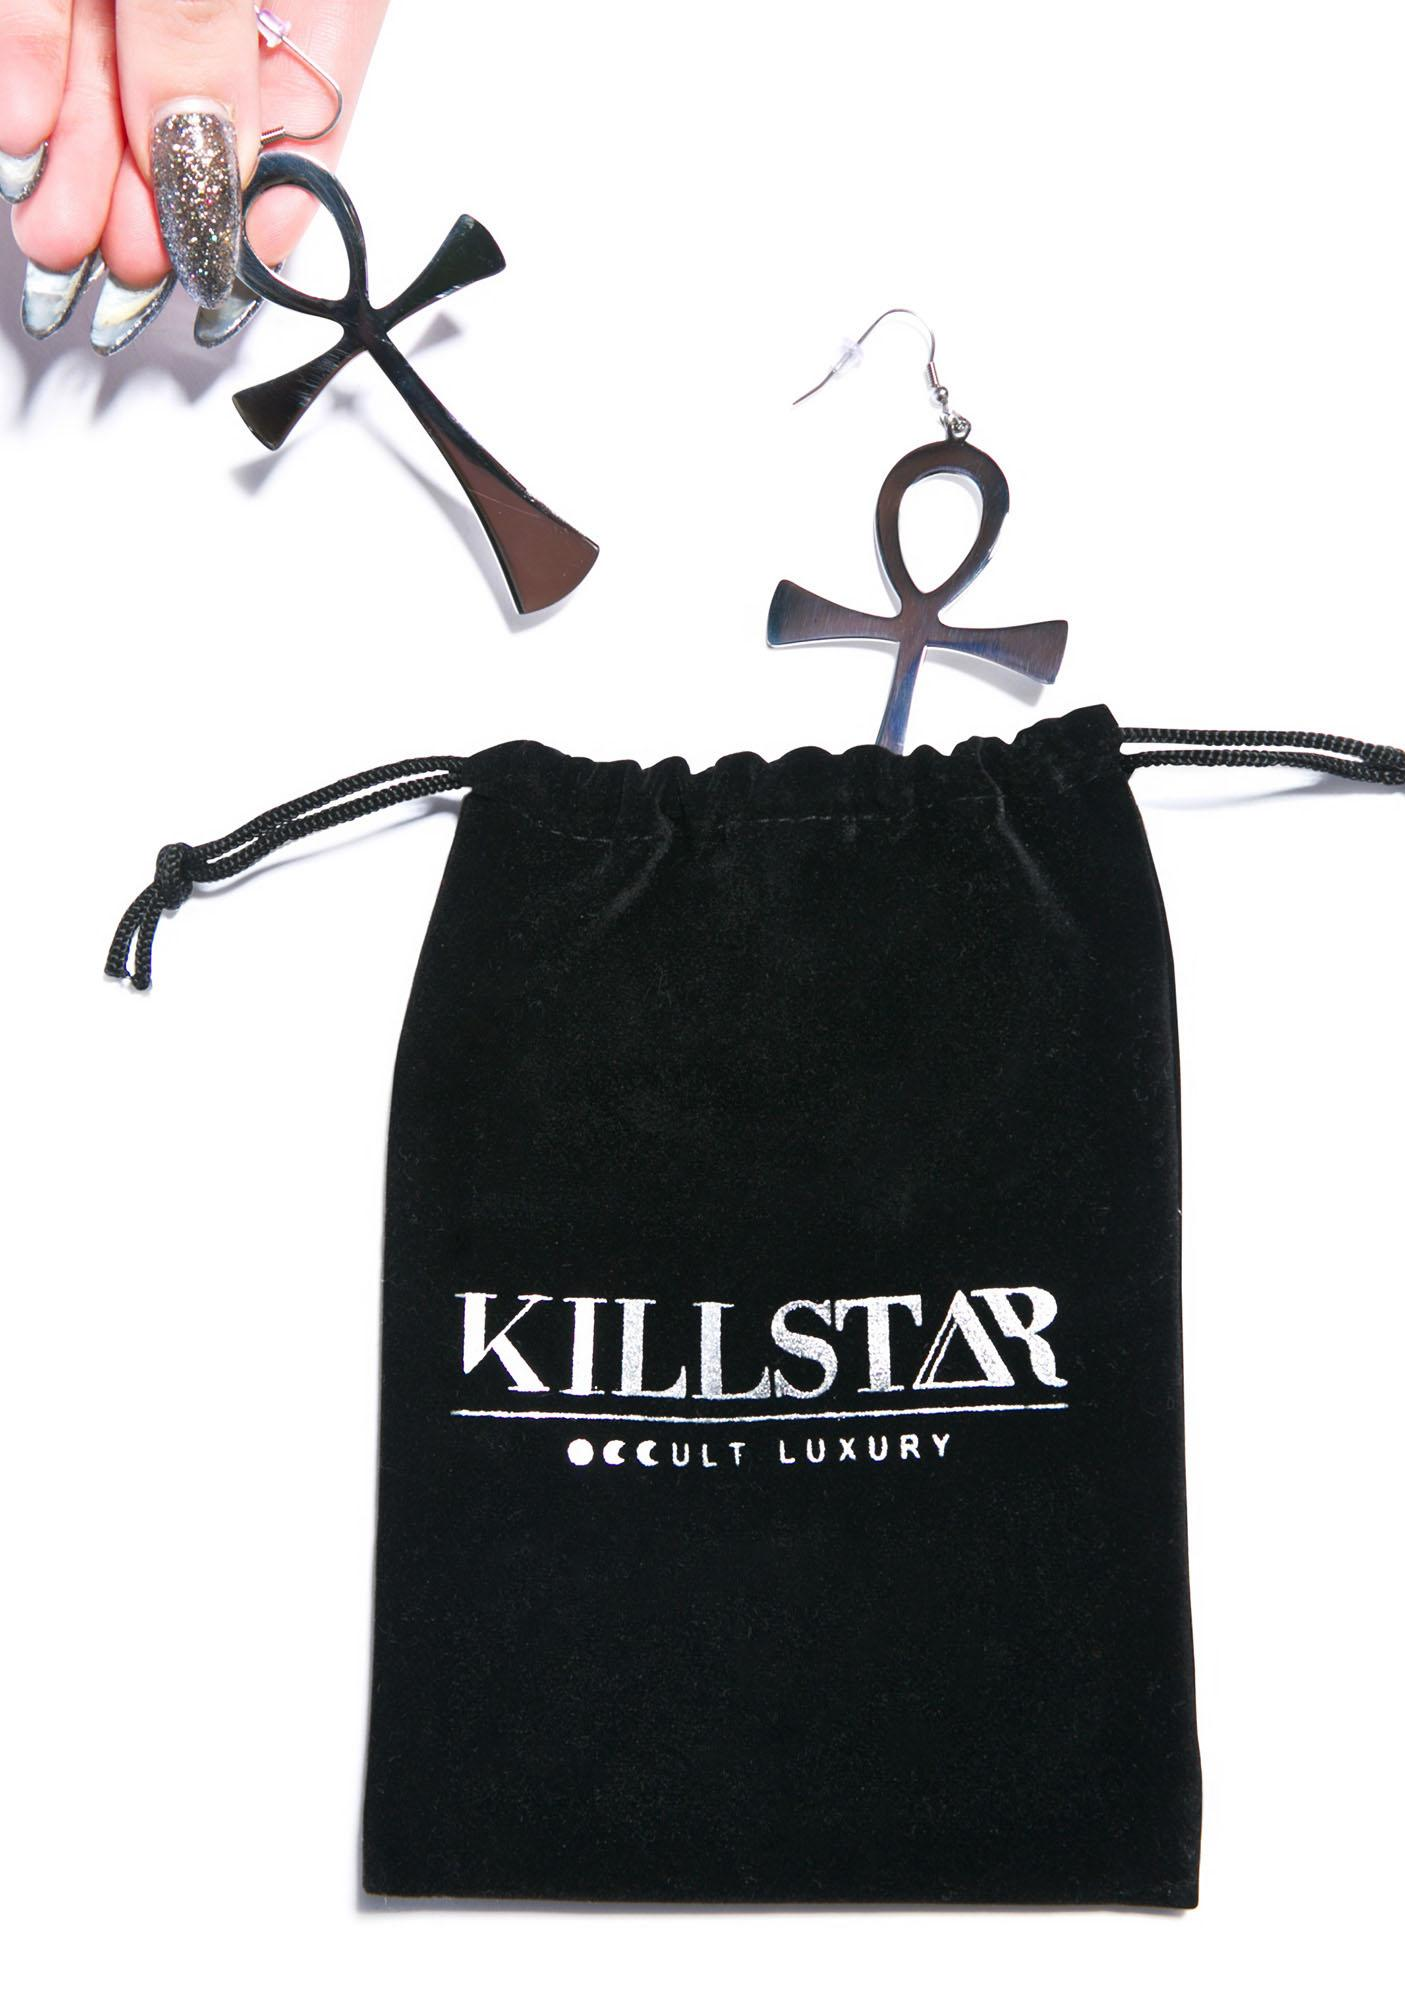 Killstar Ankh Earrings